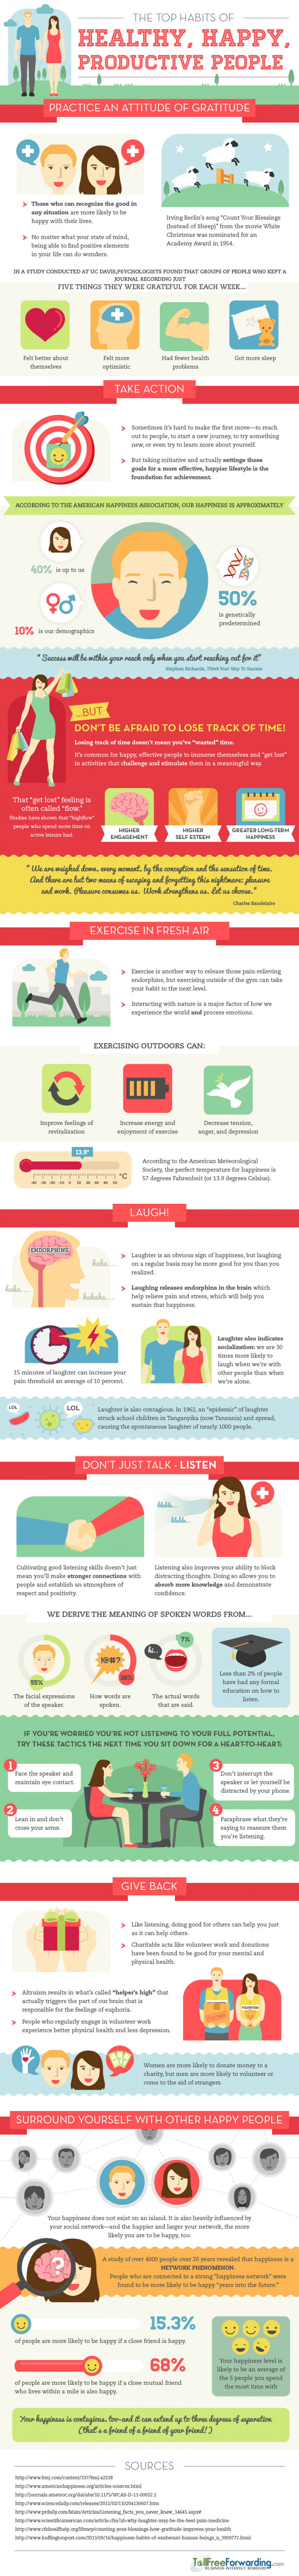 The Top Habits of Healthy, Happy, Productive People Infographic